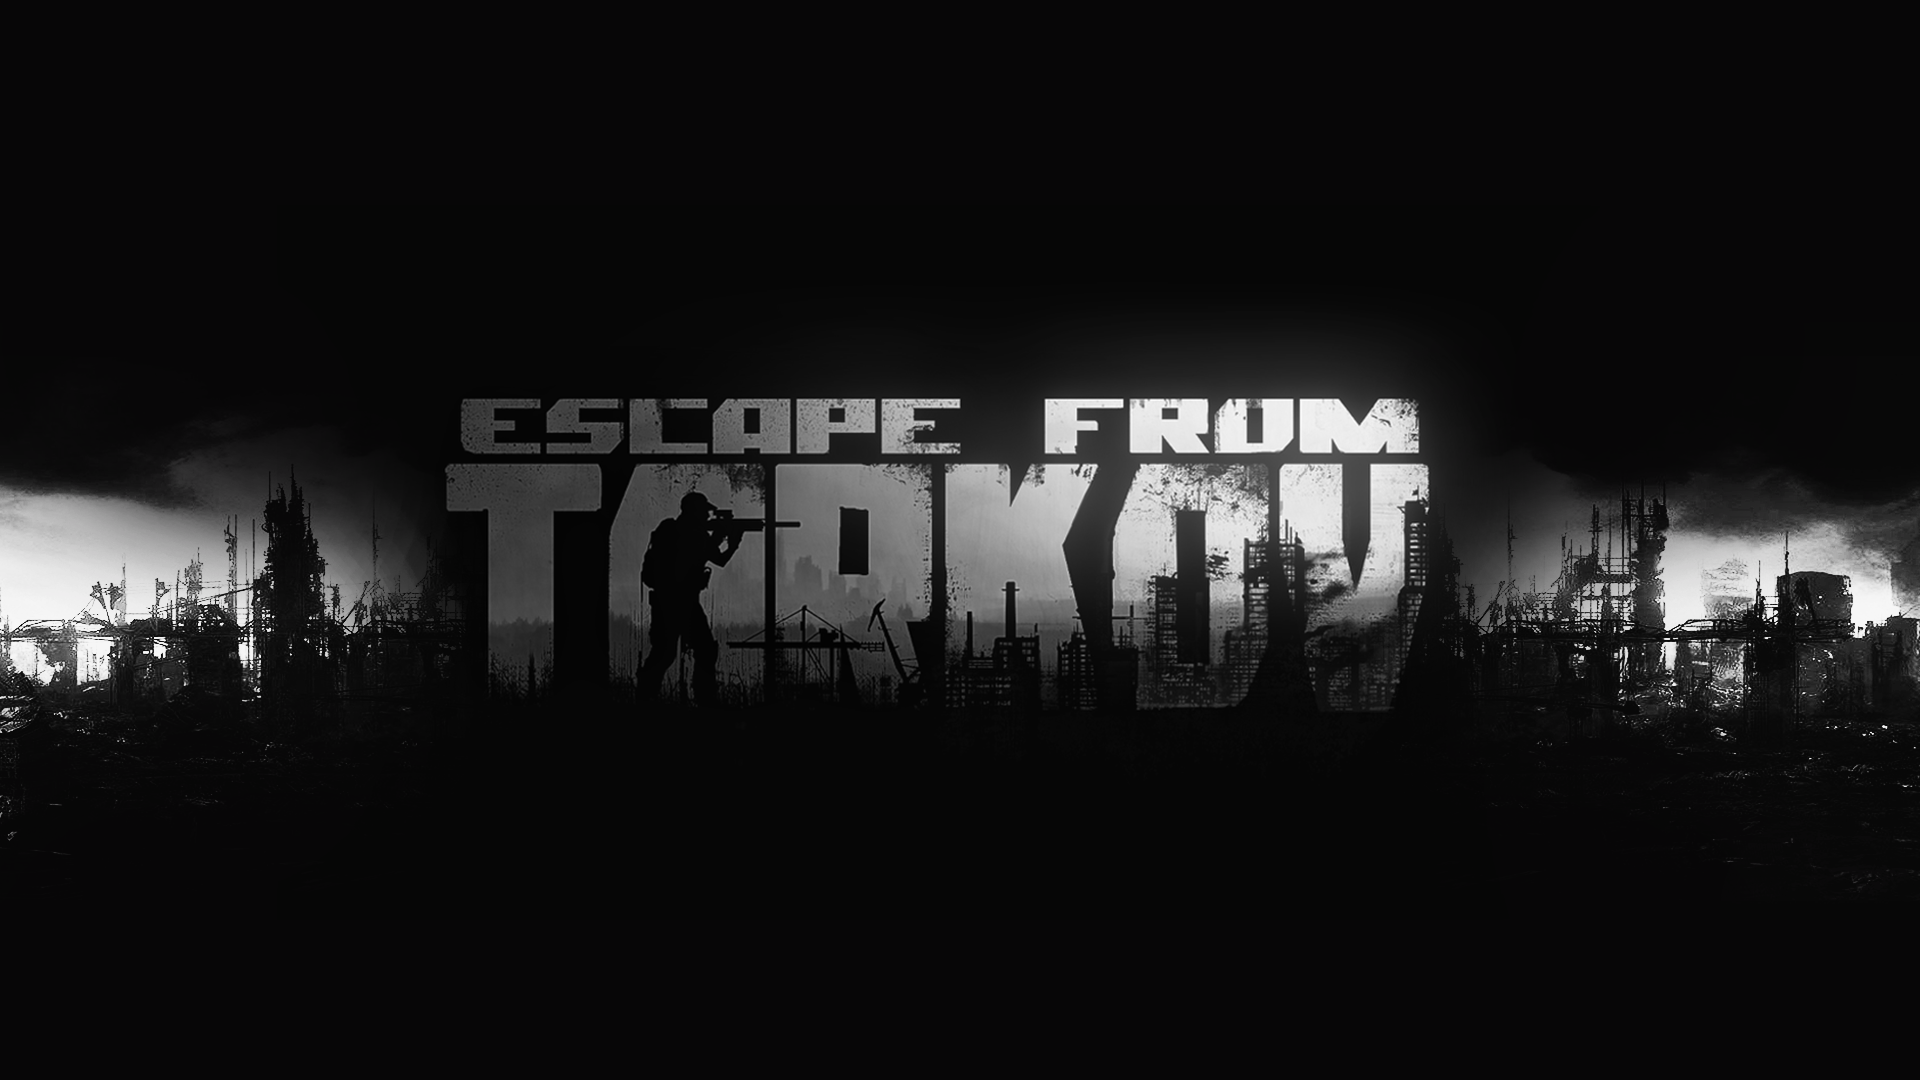 Escape From Tarkov Wallpaper 4k: Pin By Buu Dang On IPhone 6S Plus Wallpapers Must To Have